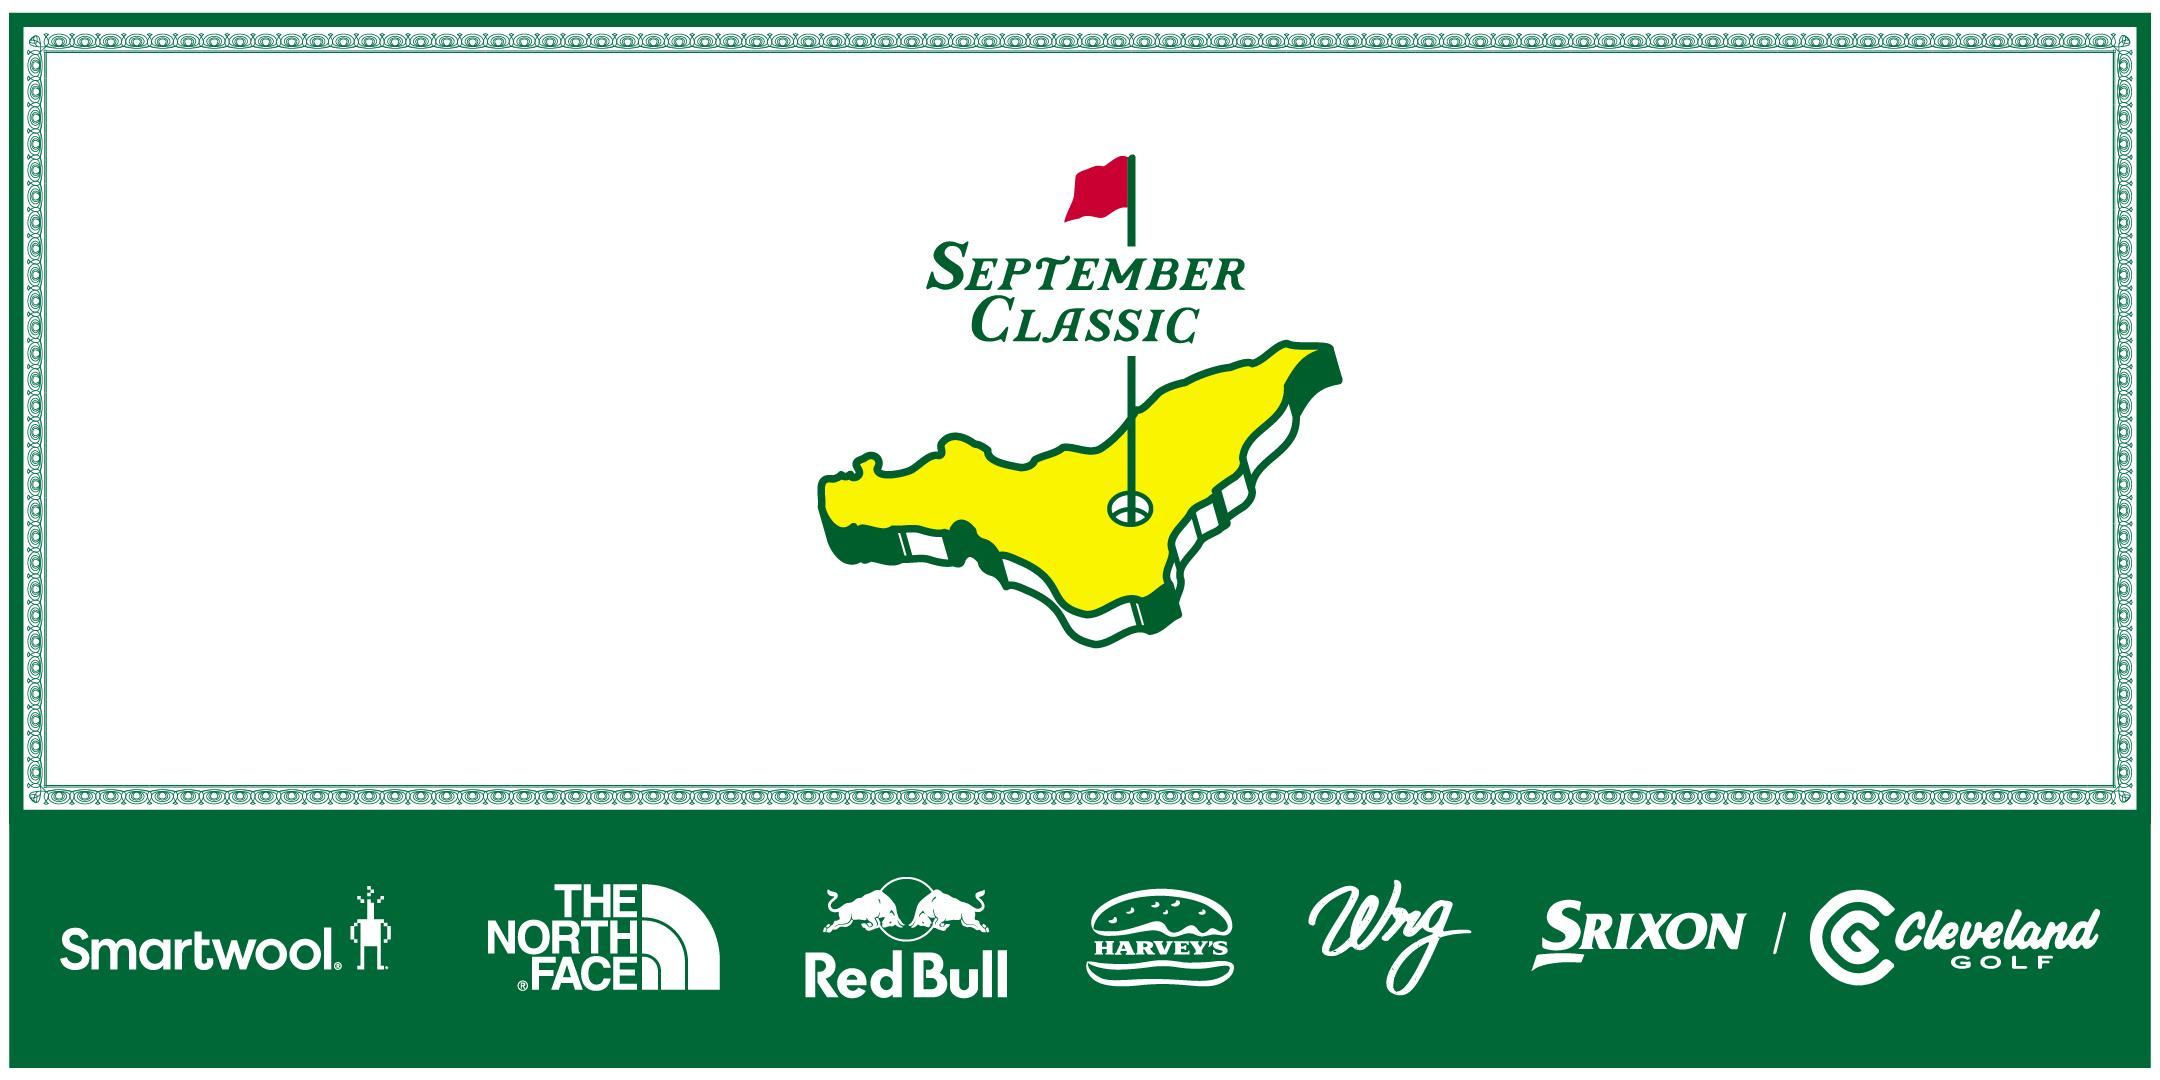 2nd Annual September Classic Charity Golf Tournament